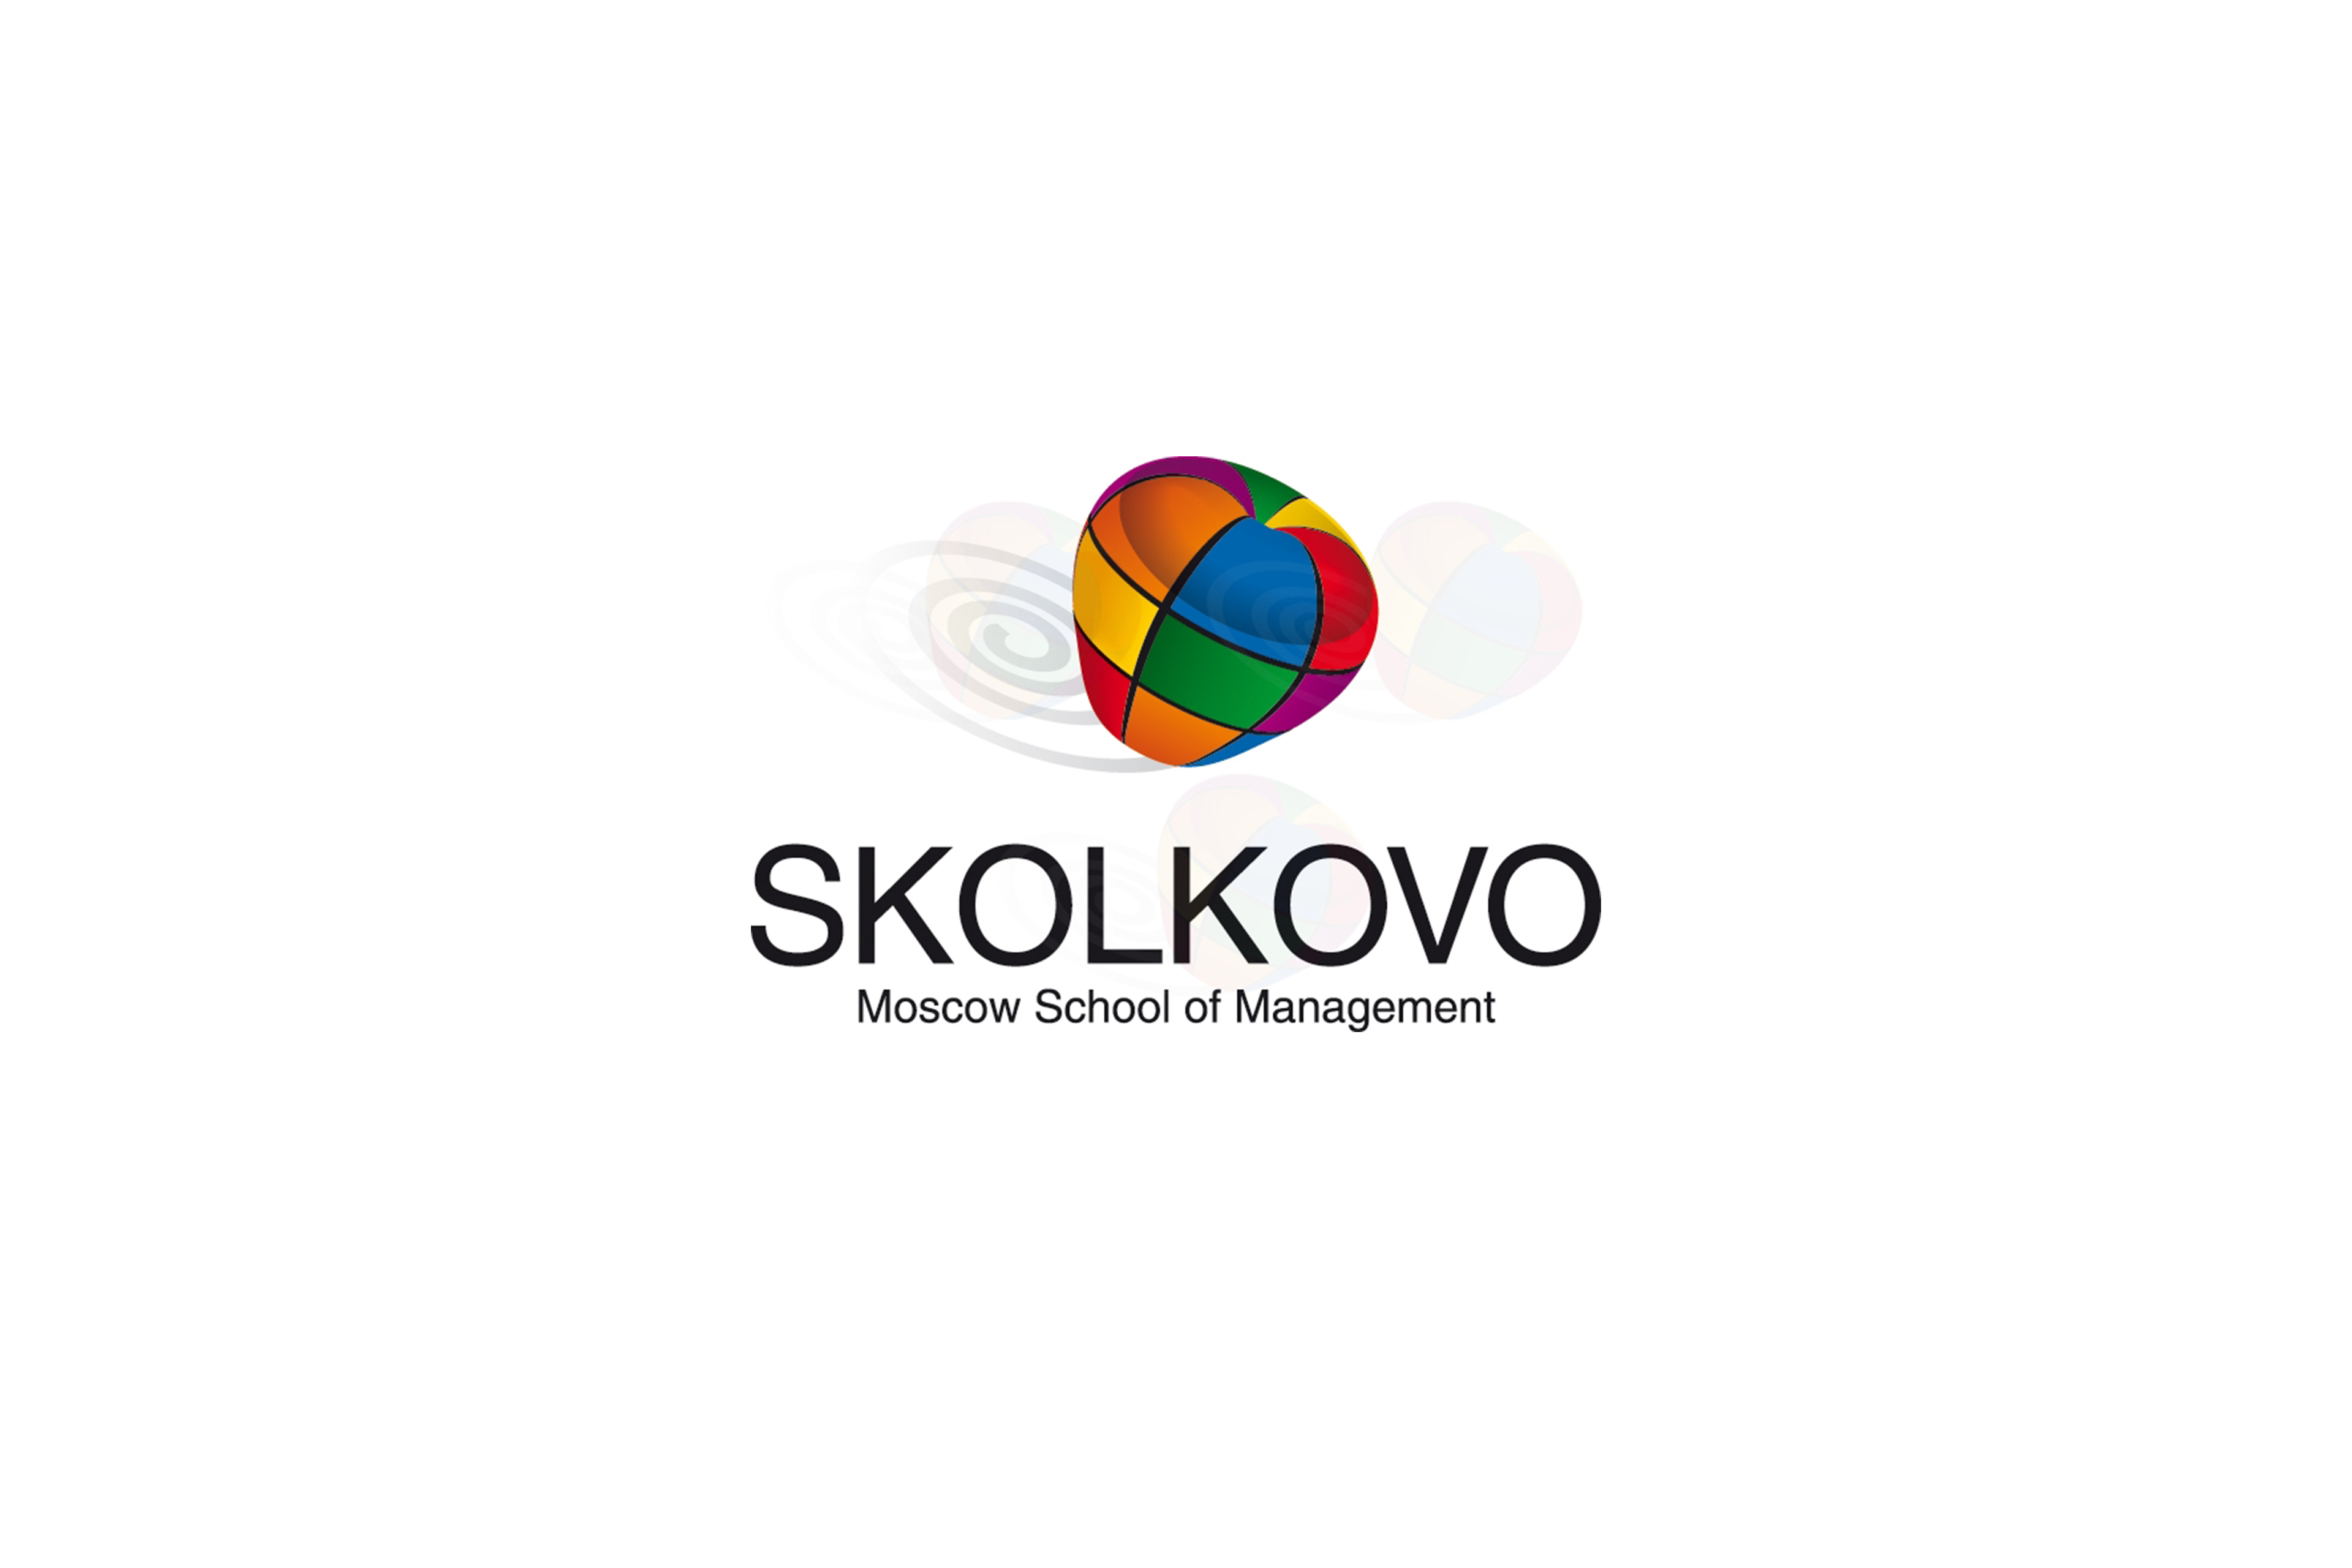 SKOLKOVO Institute for Emerging Market Studies logo